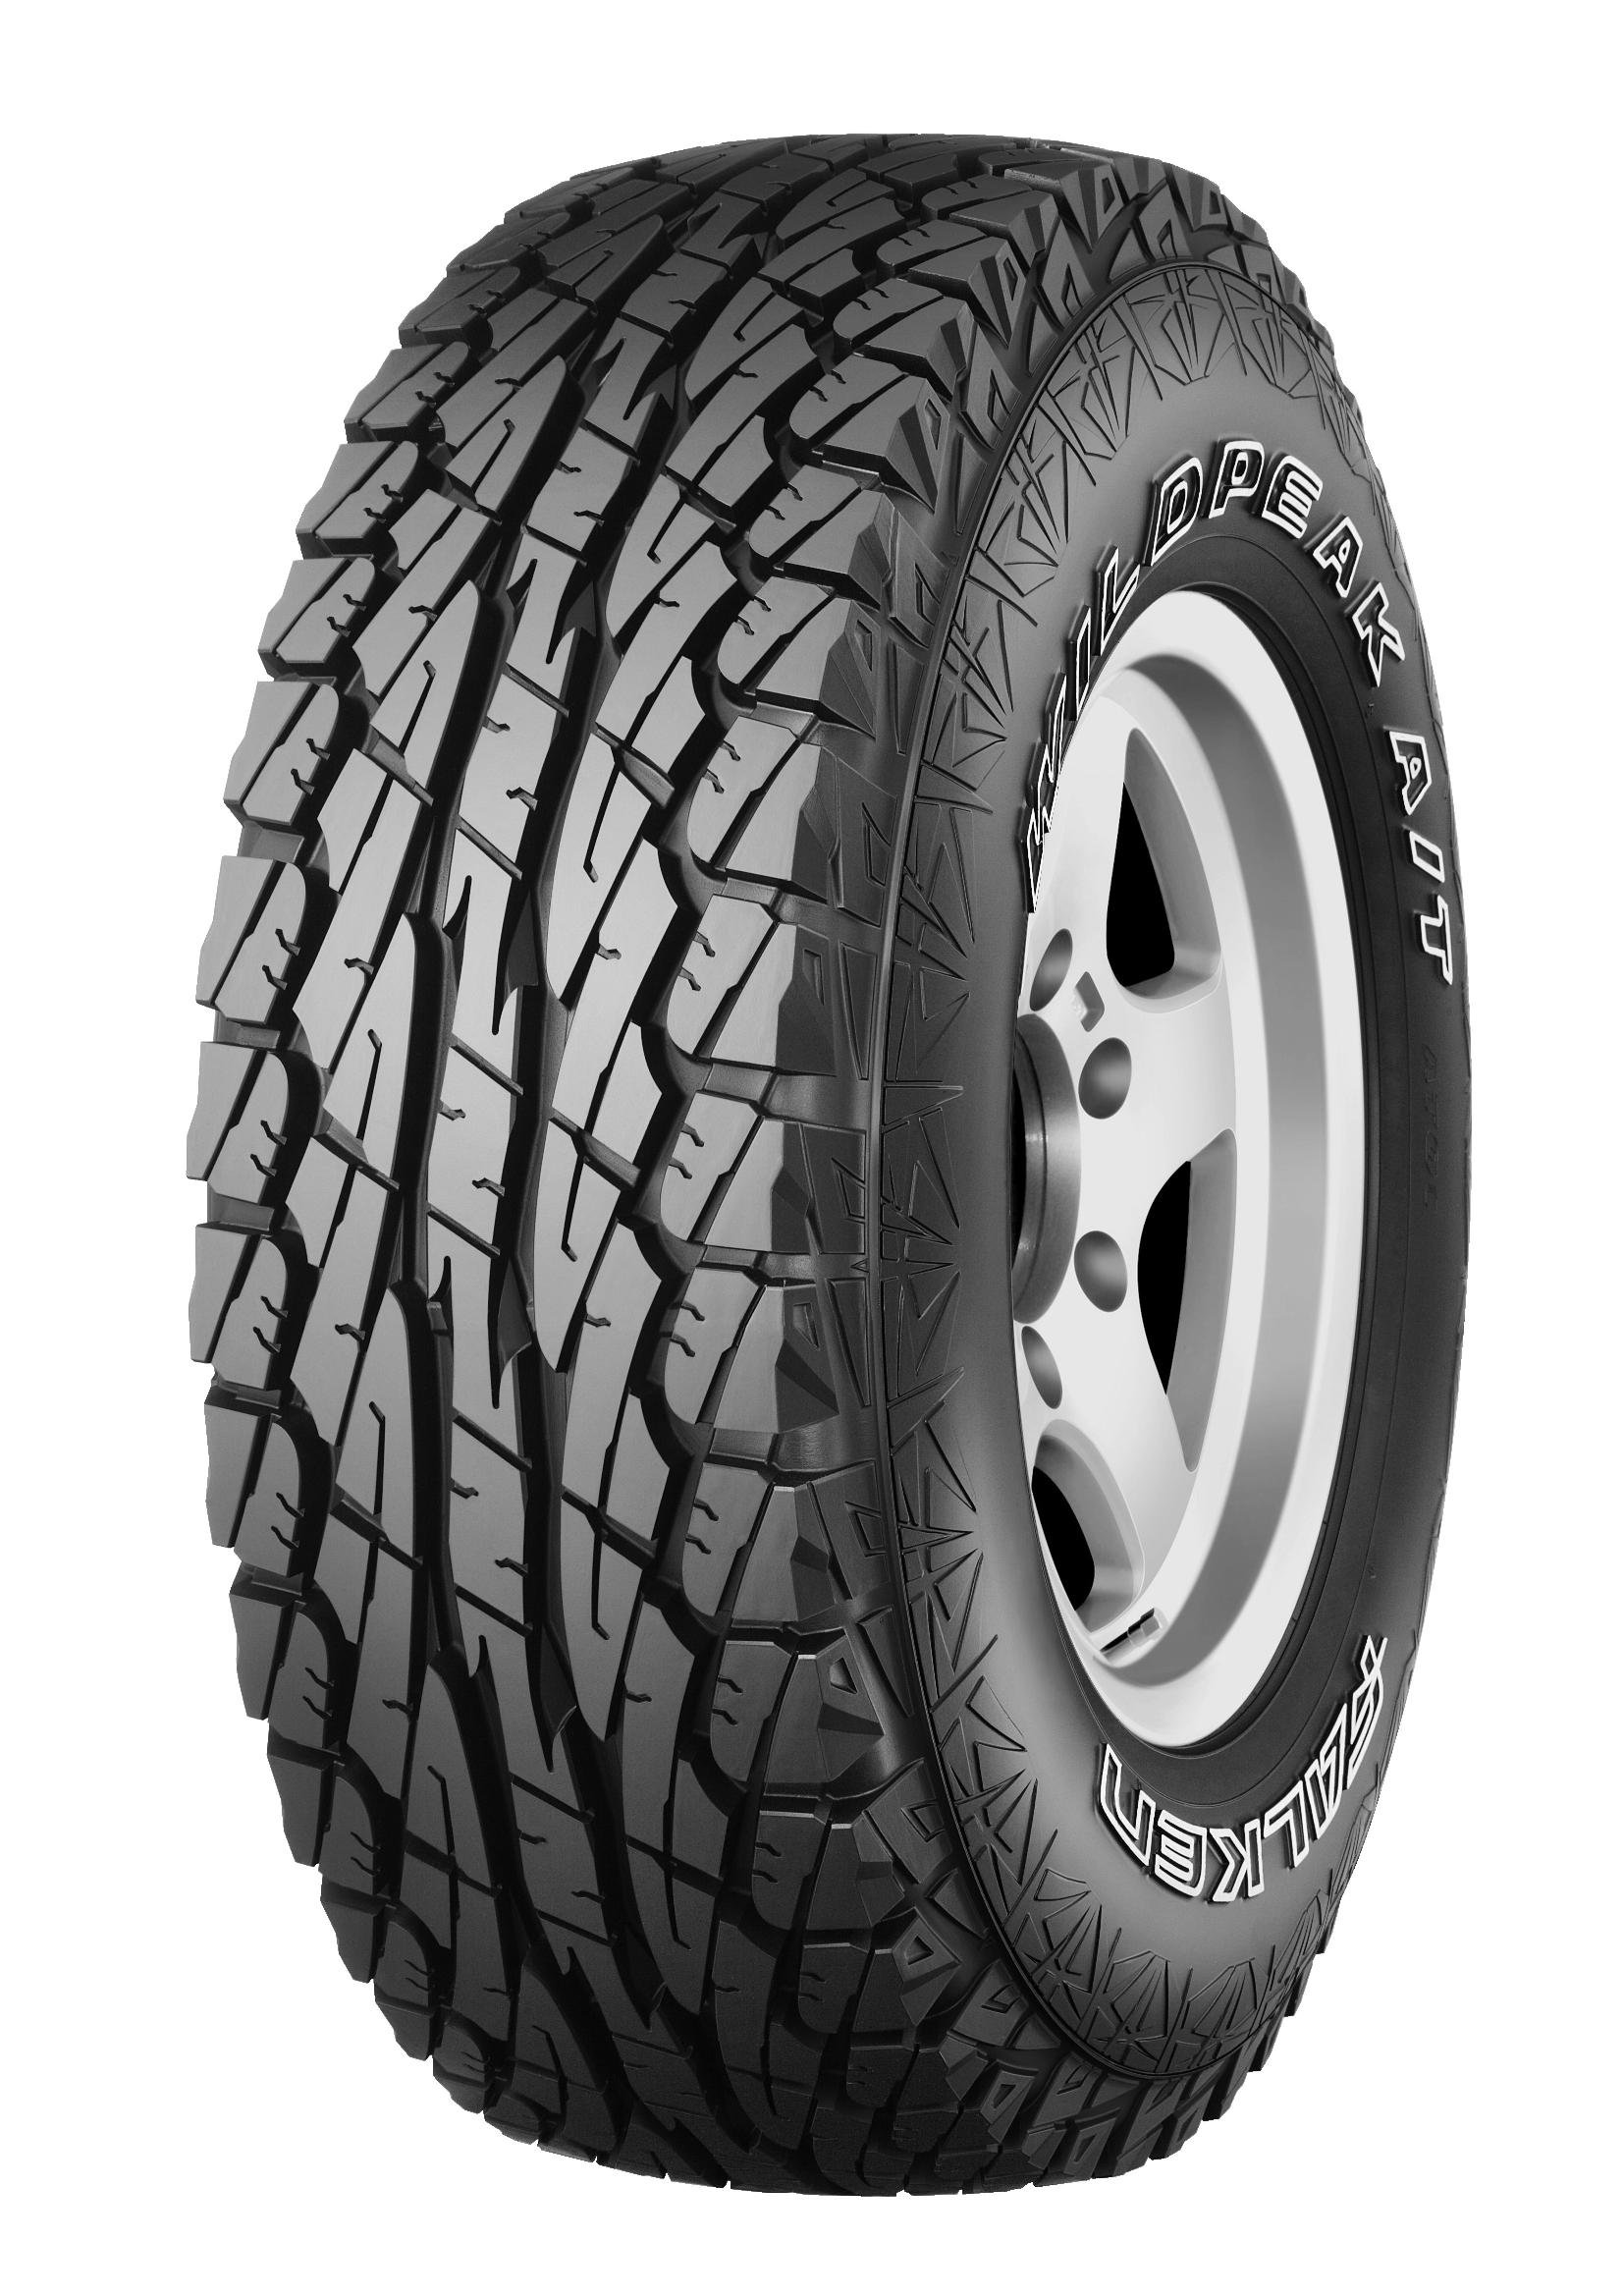 Pneu FALKEN WILDPEAK A/T AT01 275/65R17 115 H